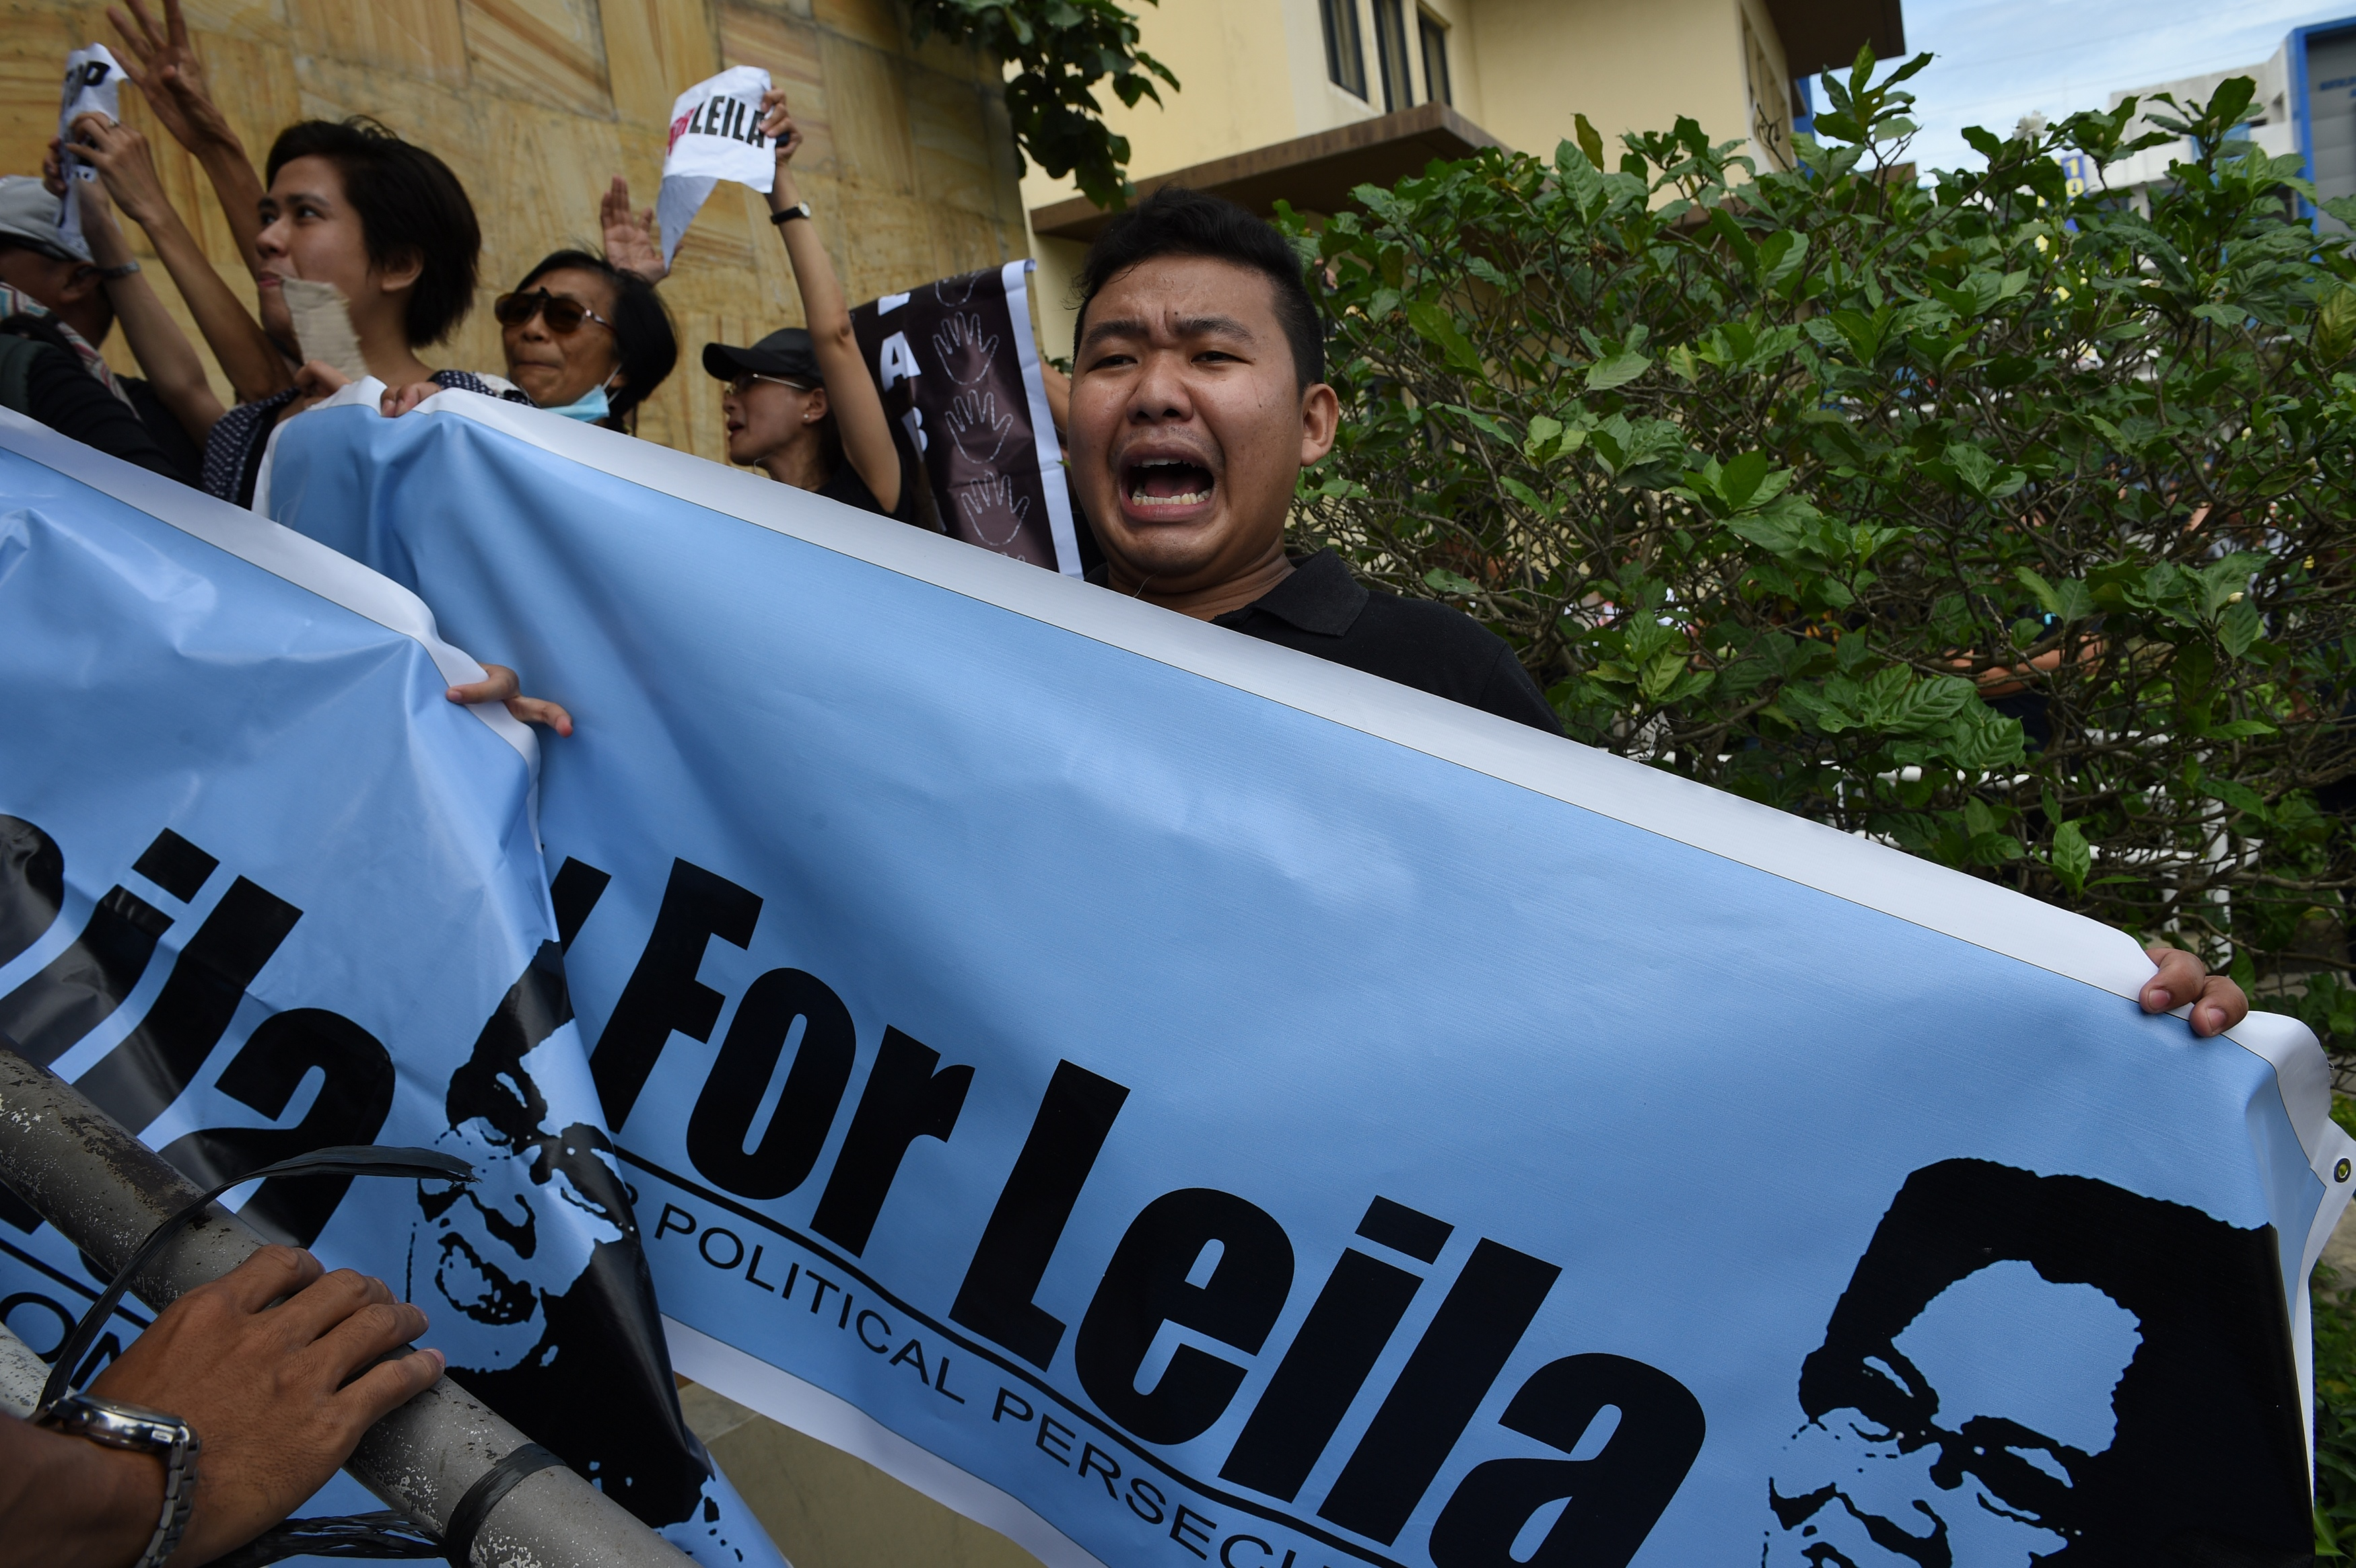 A supporter of Senator Leila De Lima shouts slogans as they hold a rally outside the court building in Muntinlupa City, suburban Manila on Feb. 24, 2017.